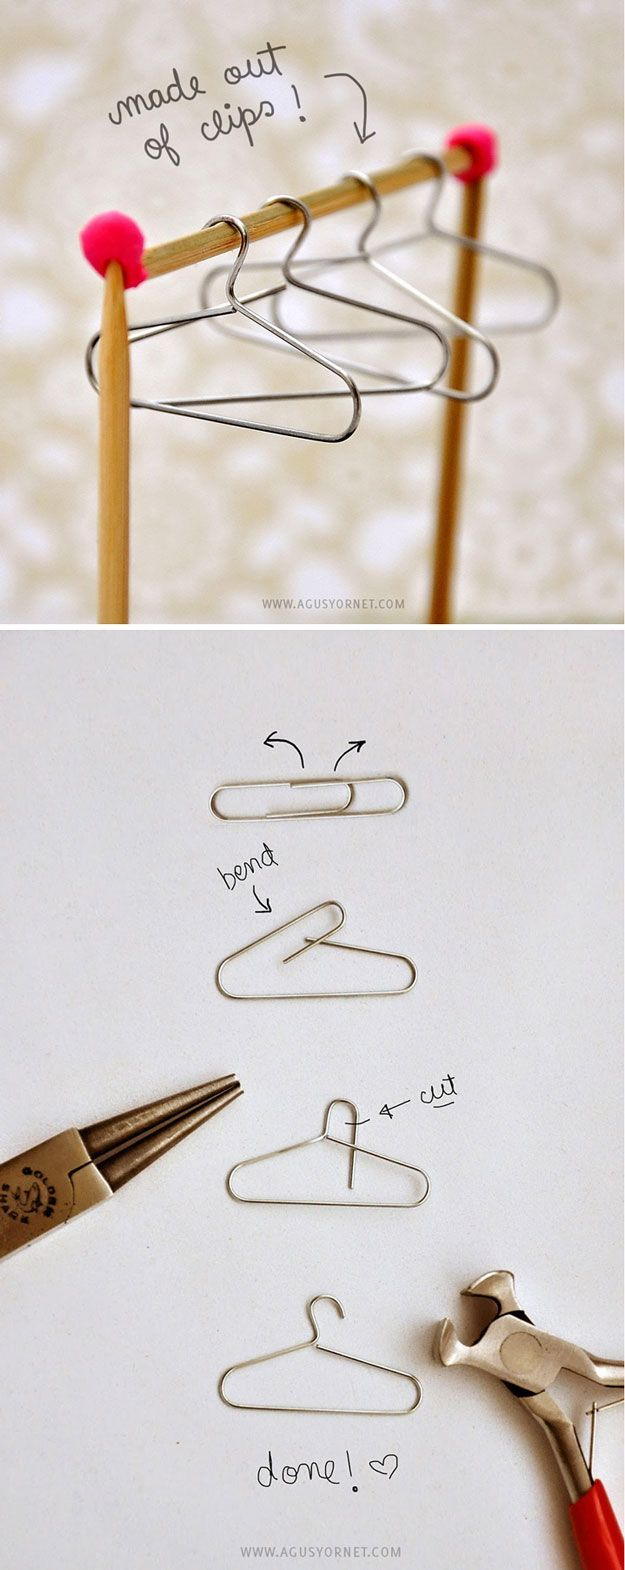 Cool Mini Homemade Crafts and Scrapbook Ideas | DIY Mini Hangers by DIY Ready at d